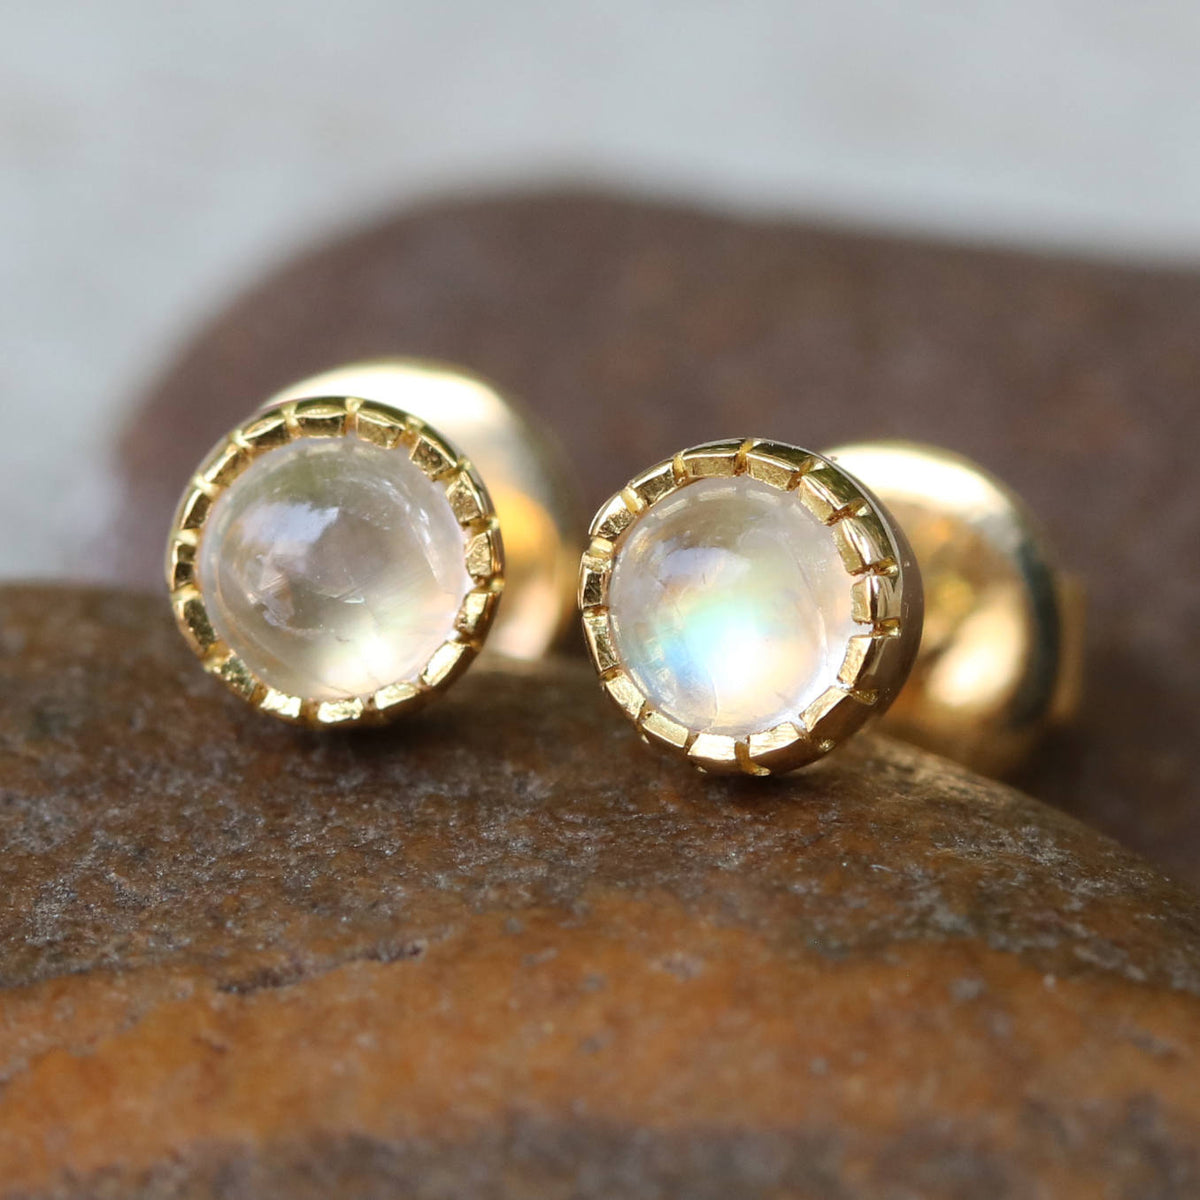 Earrings,Tiny round cabochon moonstone in prongs setting with 18k gold in stud style